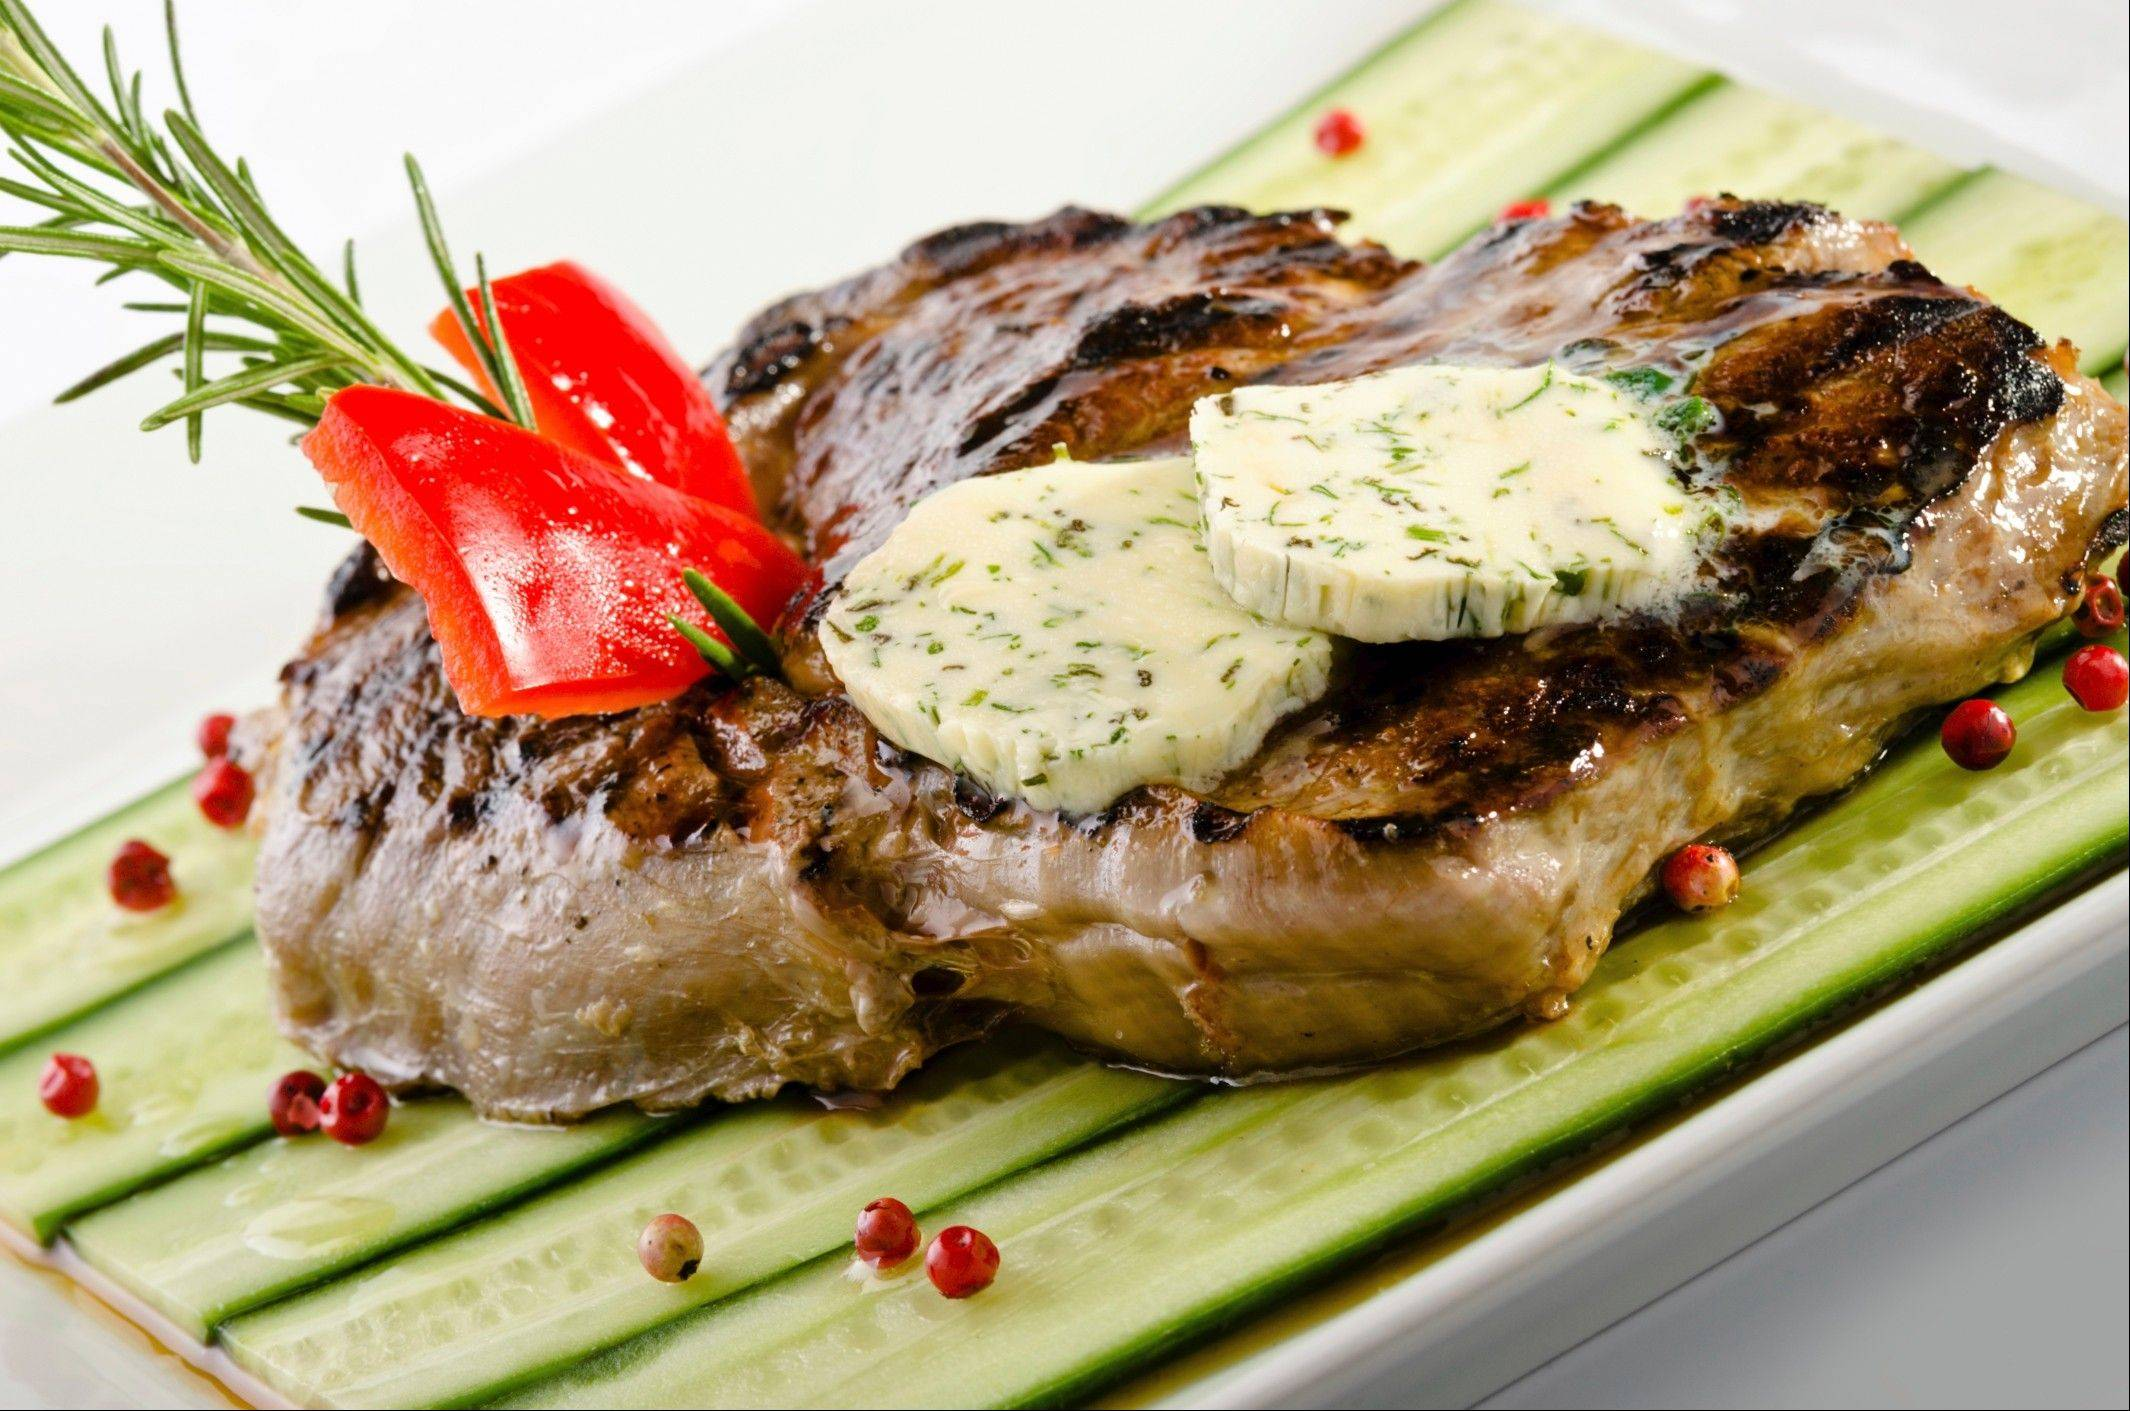 Red meat and butter can raise your bad cholesterol and negatively impact your overall cholesterol and health.